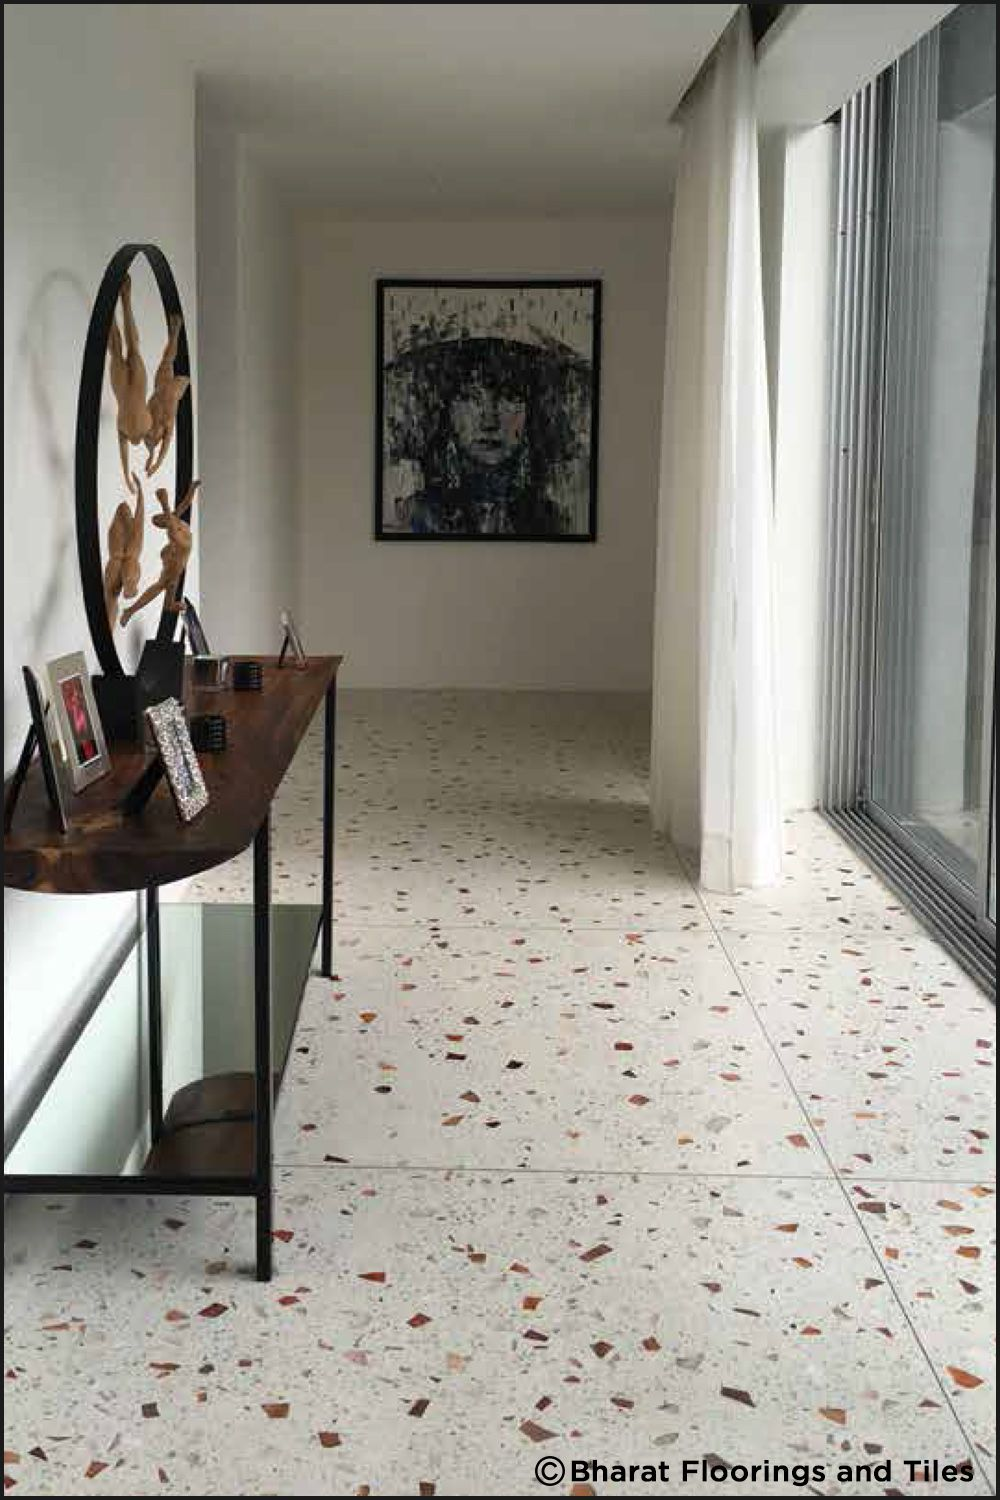 At Bharat Floorings We Believe In Transforming Your Space With Our Wide Range Of Striking Vivid And Unconventional Ce Flooring Floor Design Terrazzo Flooring